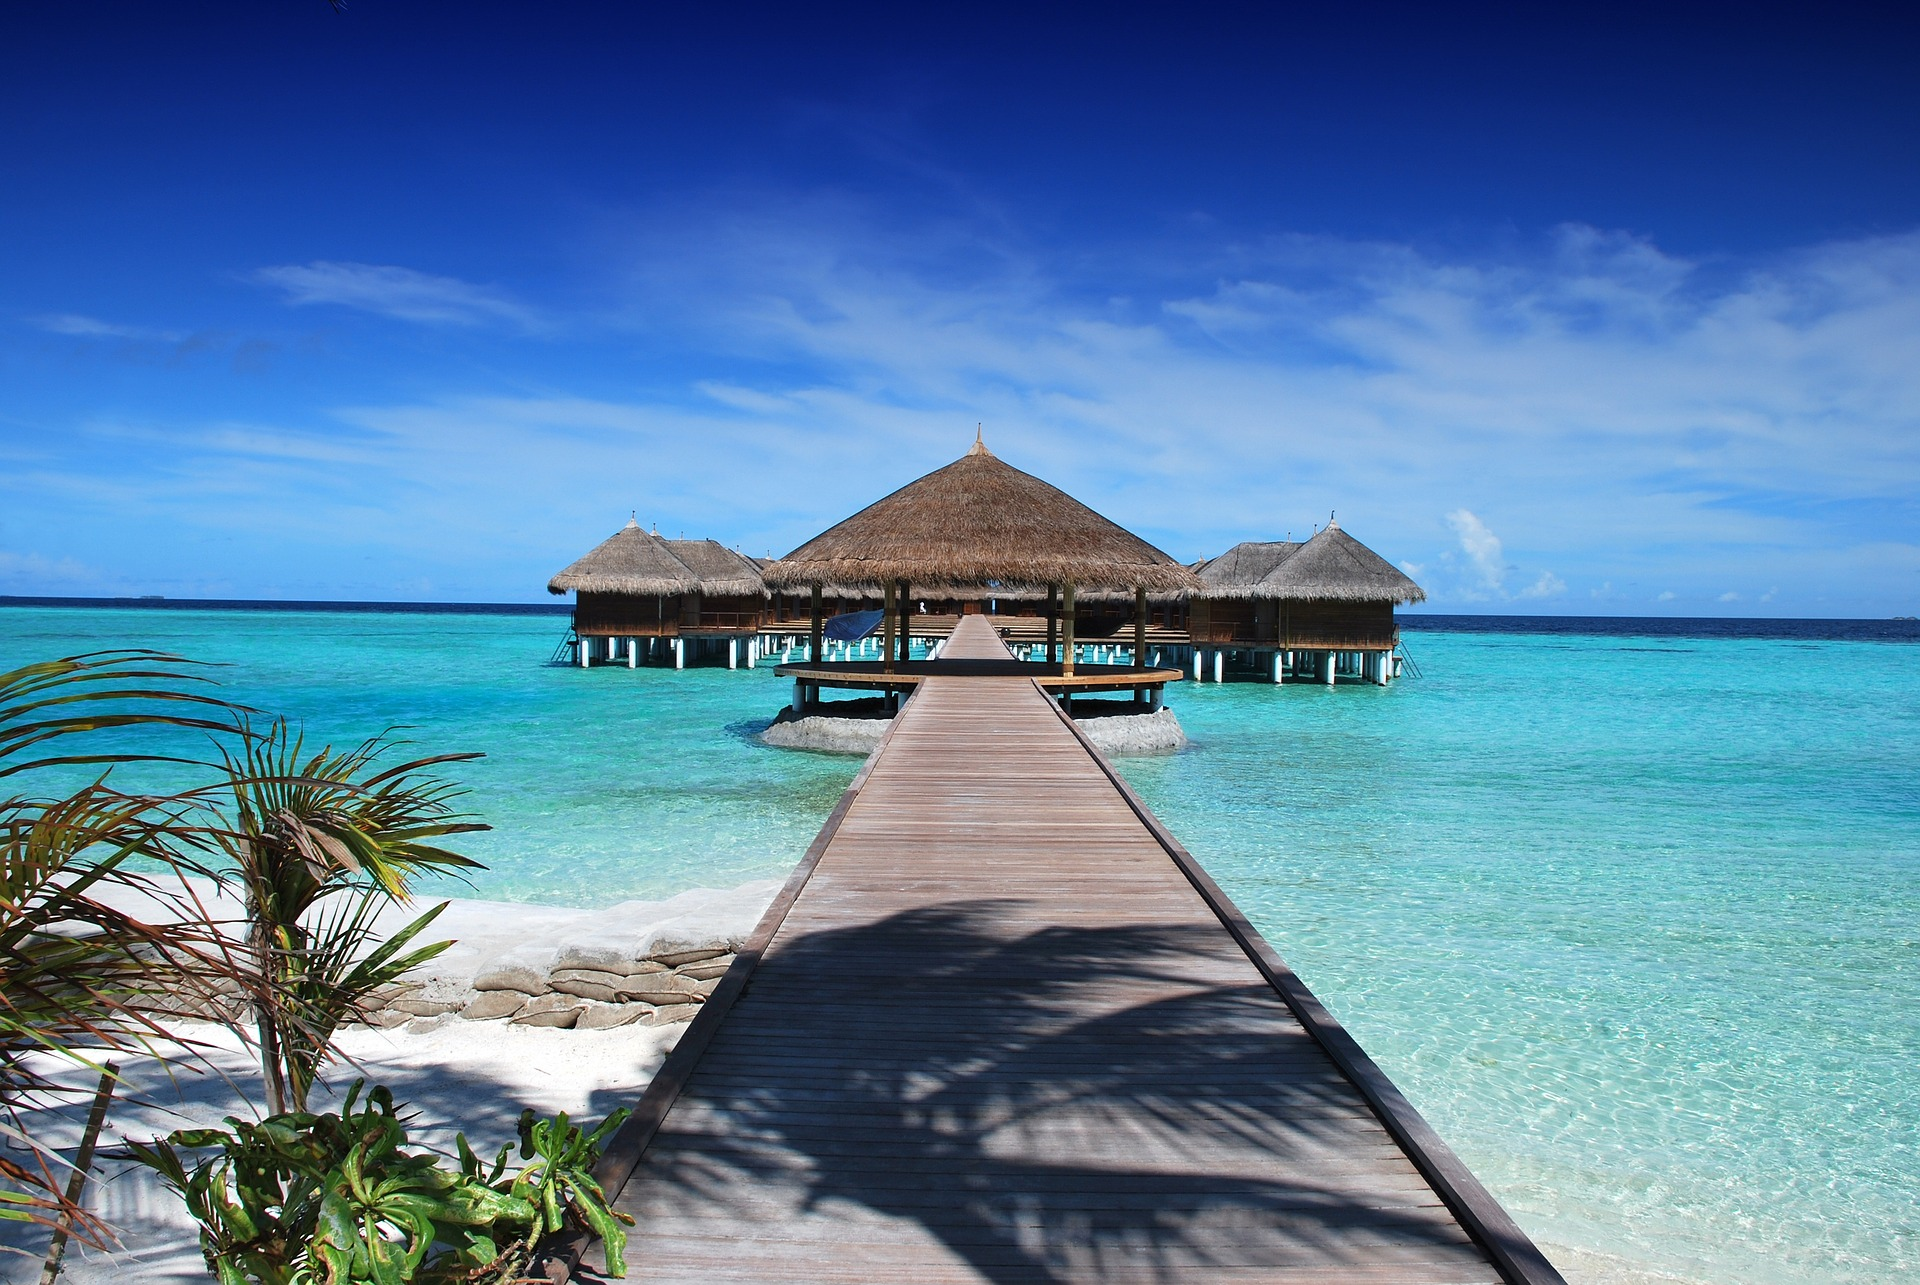 Anantara Kihavah Villas, The Maldives